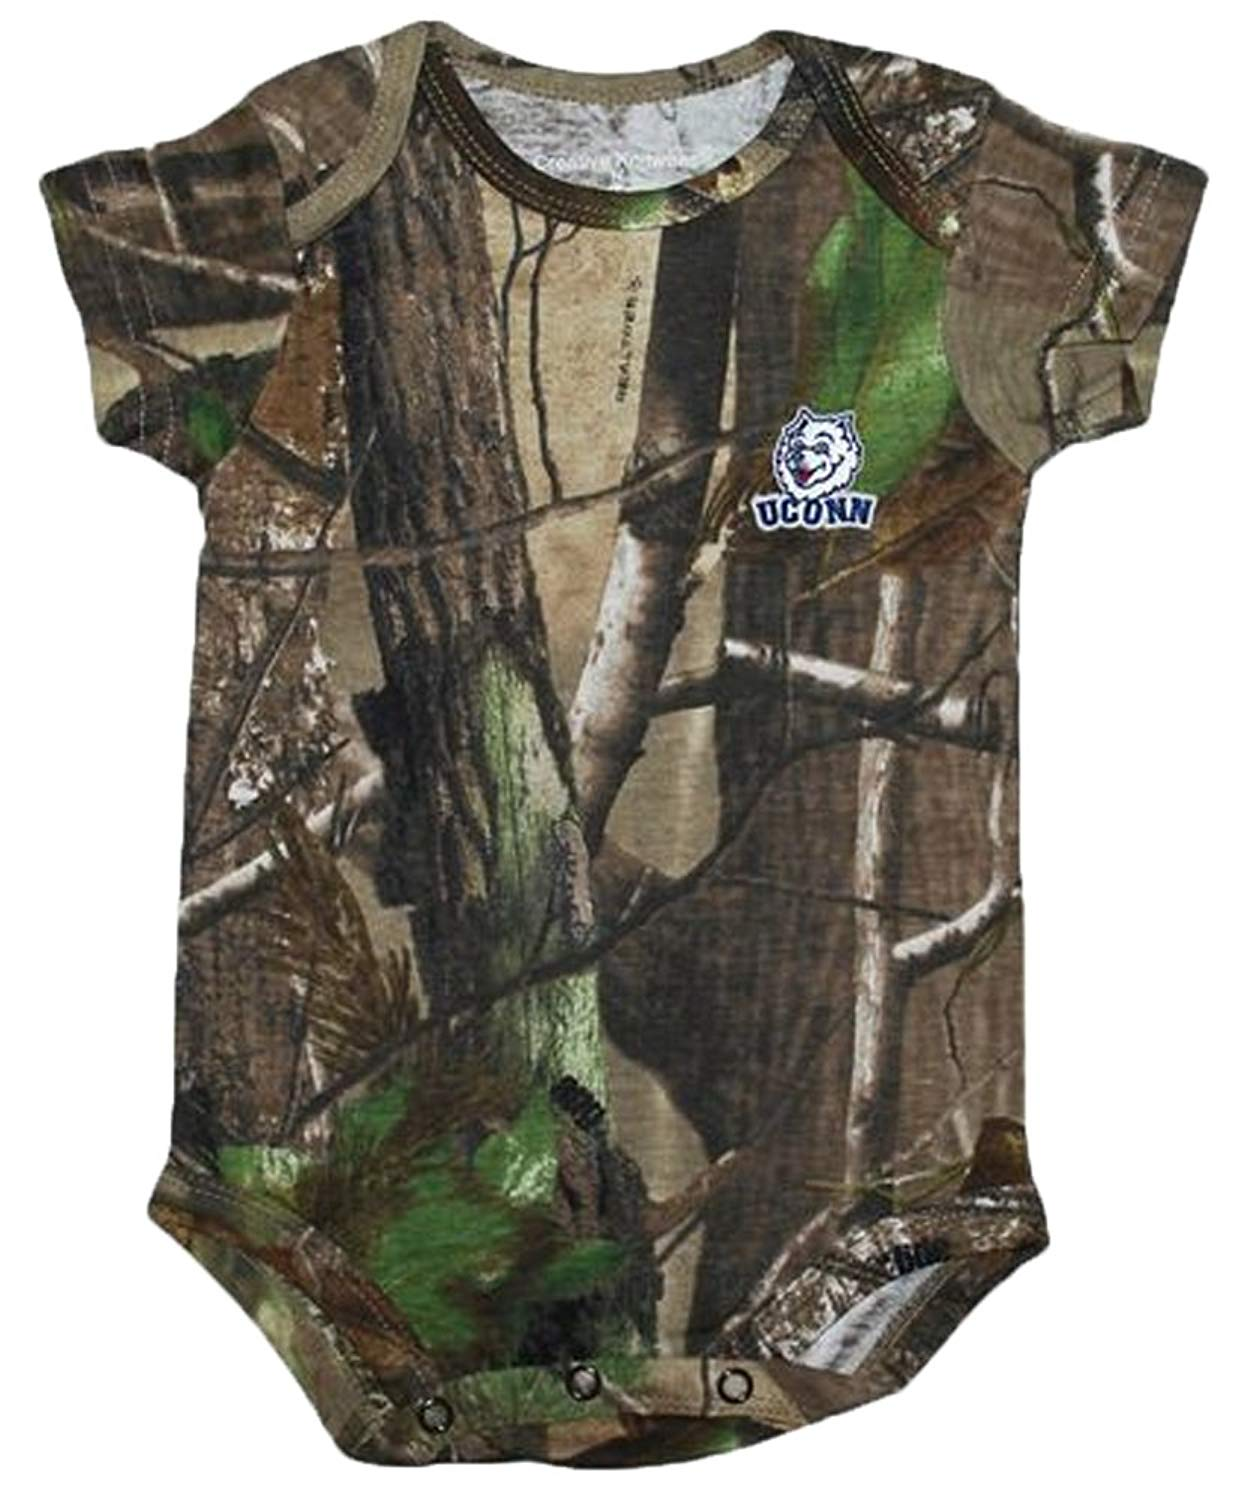 4f0b7f4003bef Get Quotations · Creative Knitwear Uconn Connecticut Huskies NCAA College Newborn  Baby Realtree Camo Camouflage Creeper